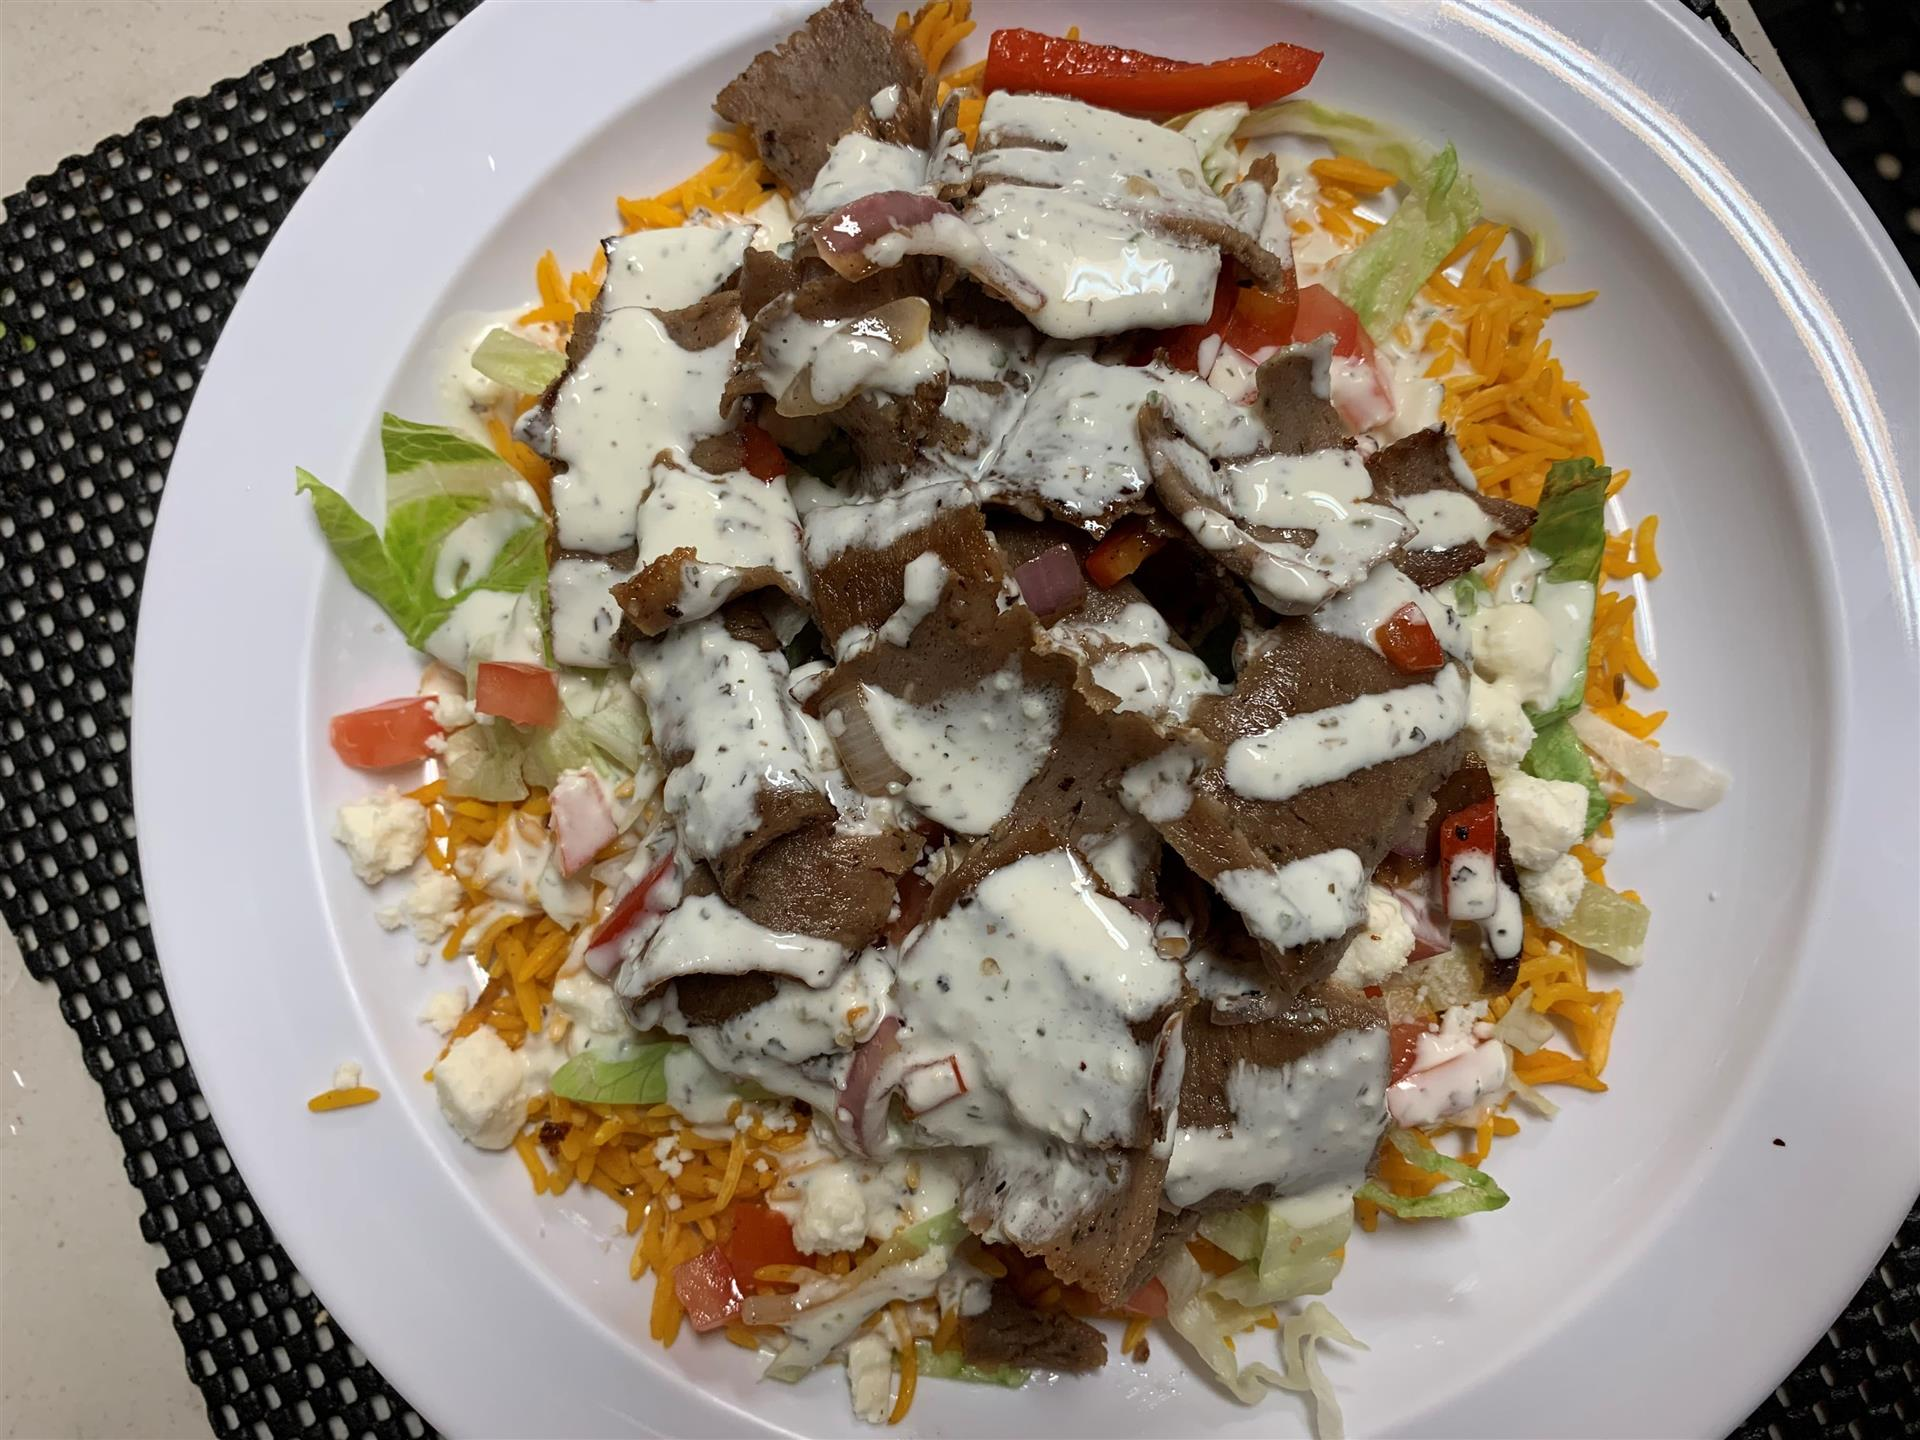 meat topped with Tzatziki sauce over a bed of lettuce, veggies and feta cheese